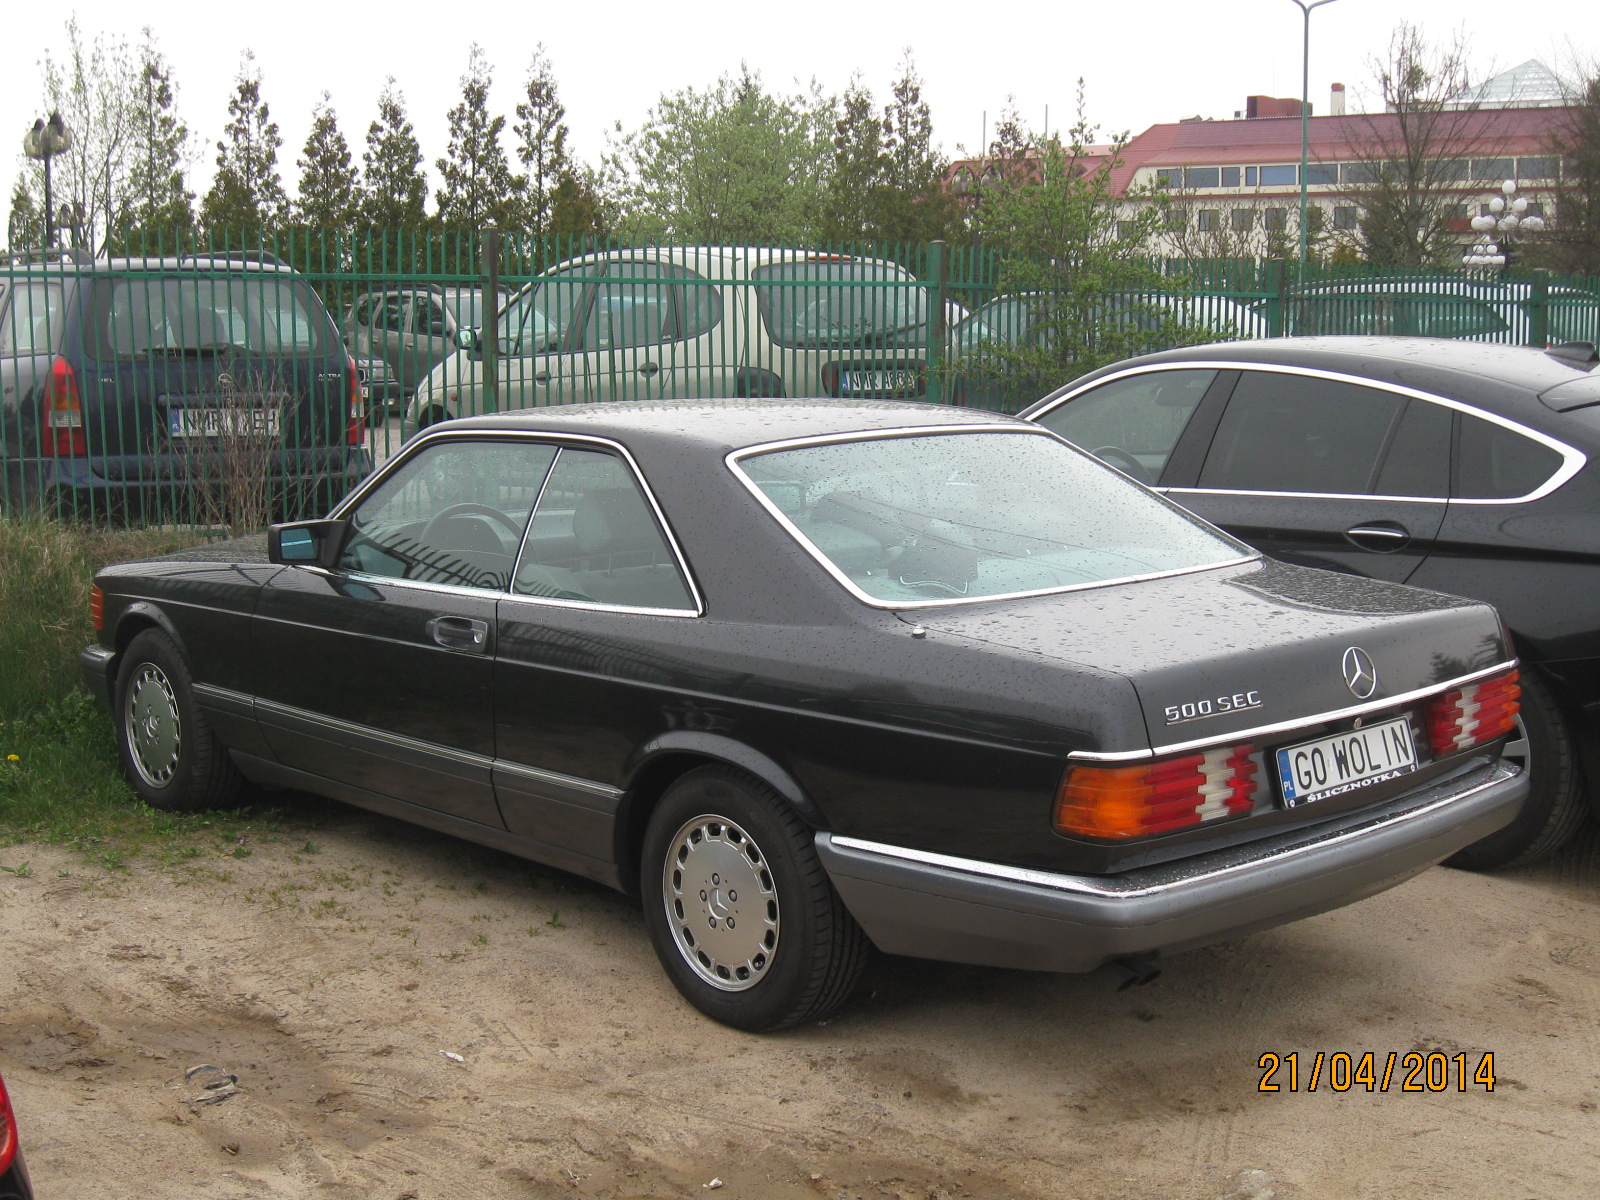 http://124coupe.pl/hosting/images/img2701.jpg